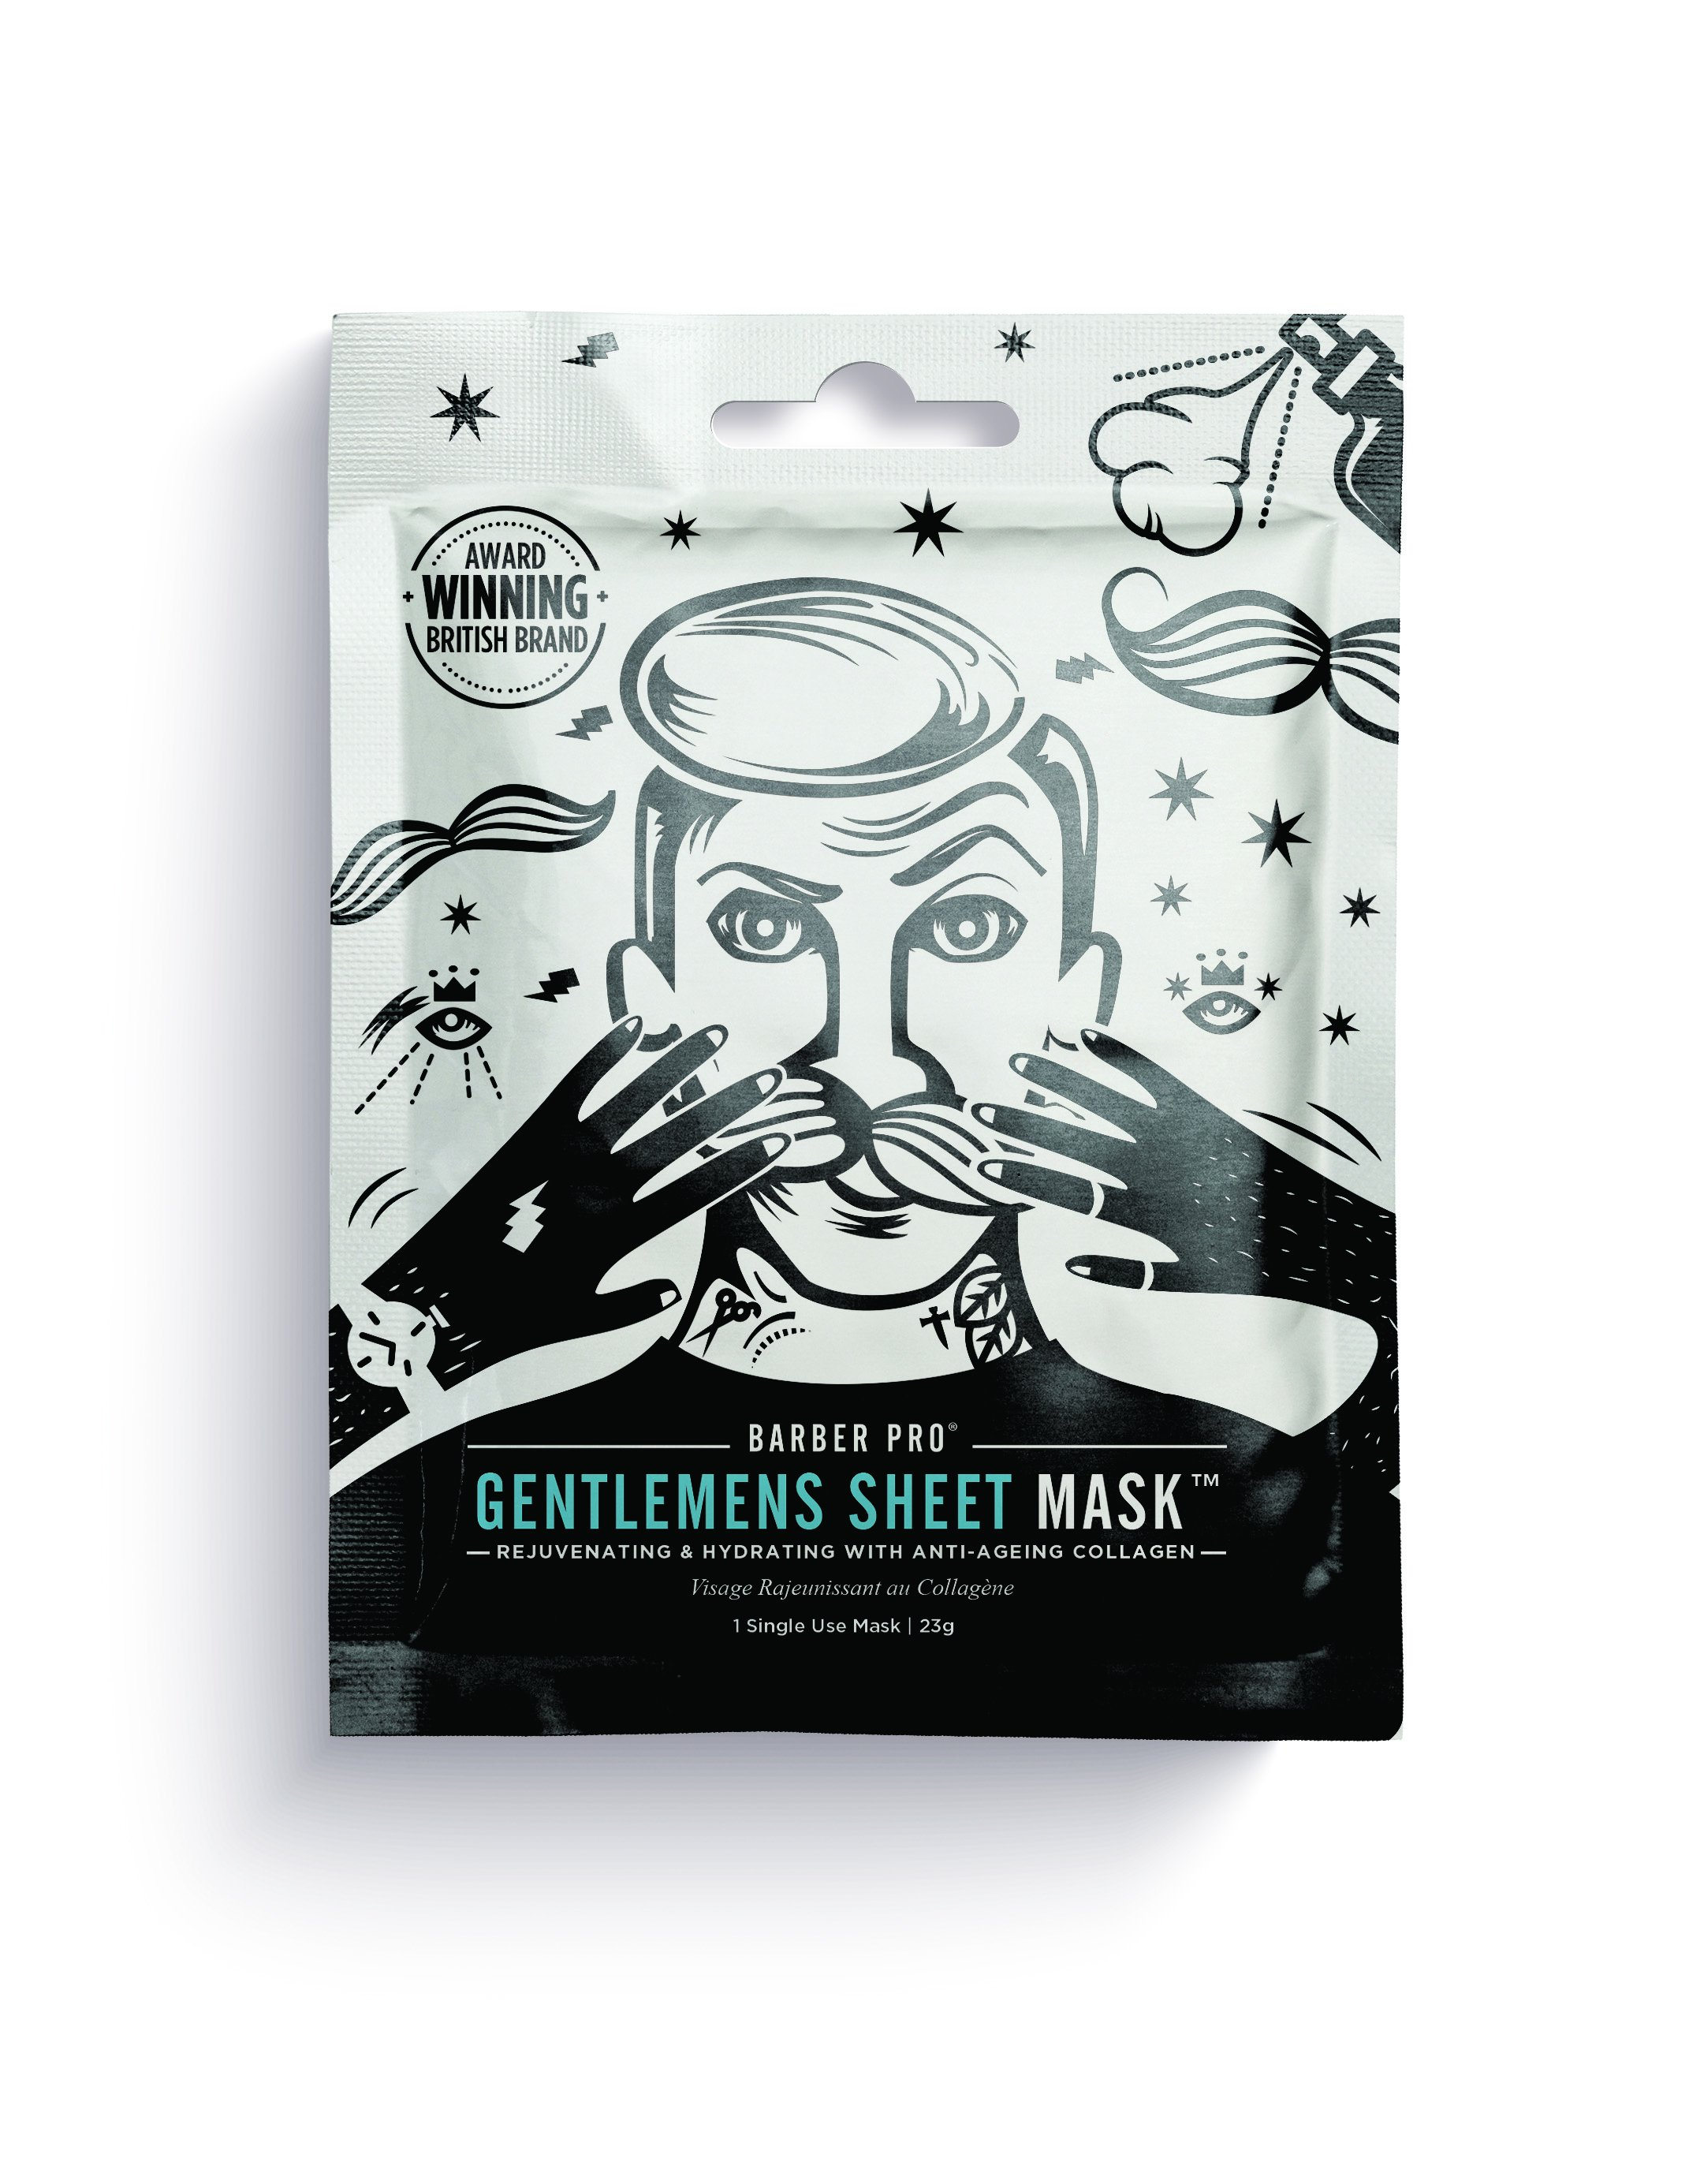 Beauty Pro Gentleman's Sheet Mask